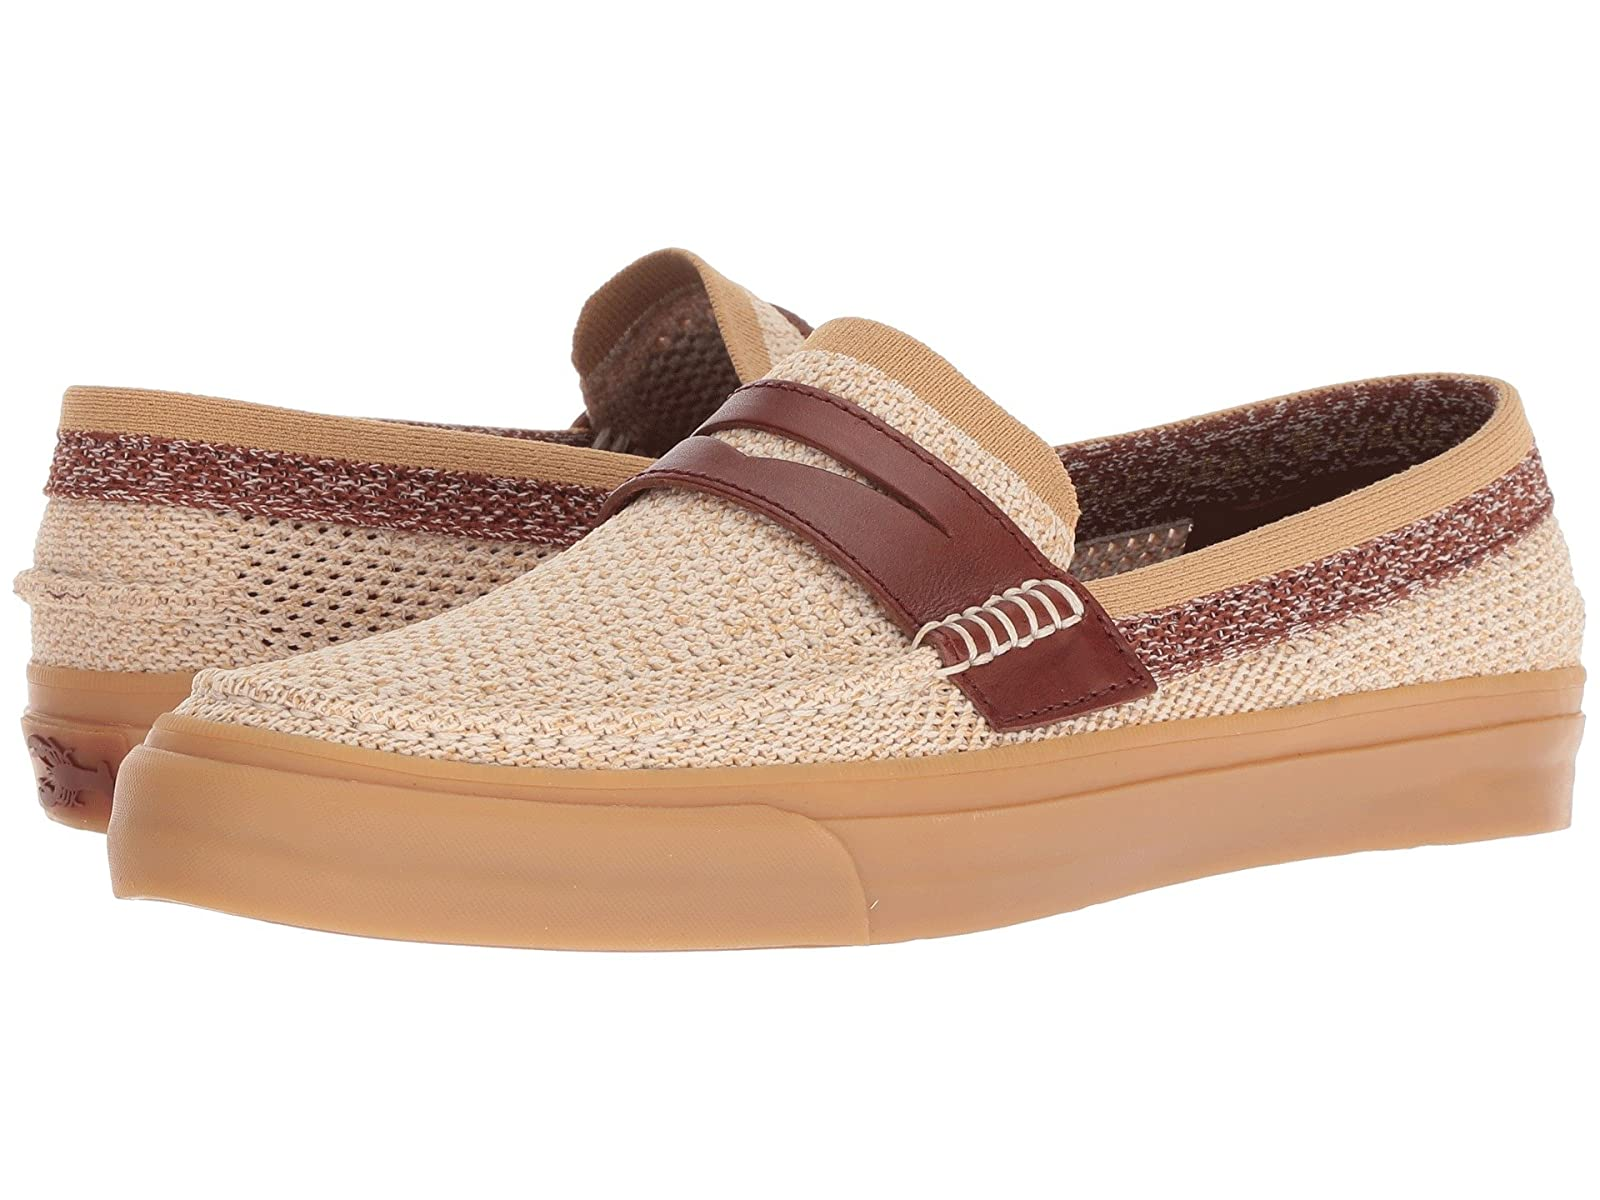 Cole Haan Pinch Weekender Luxe Stitchlite LoaferAtmospheric grades have affordable shoes